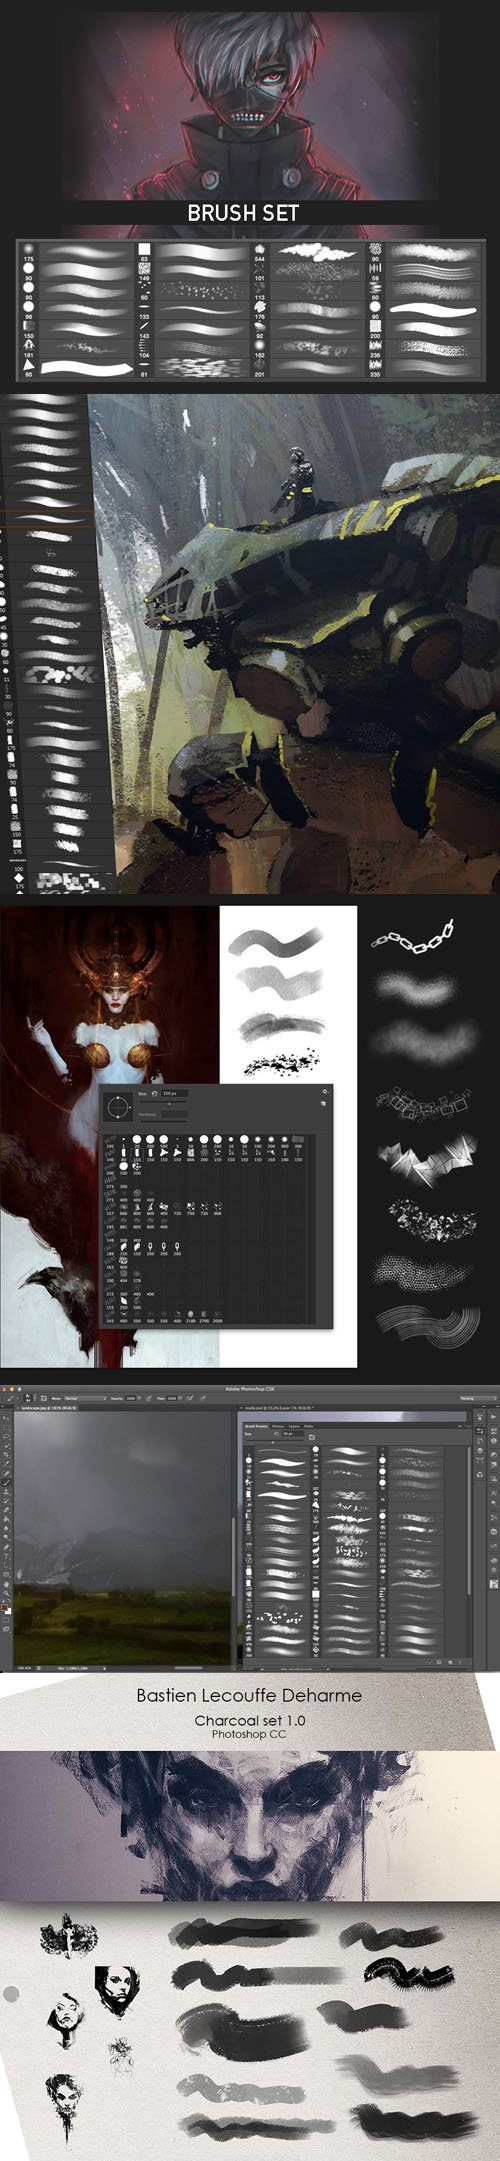 Painting & Drawing Brushes Collection for Photoshop